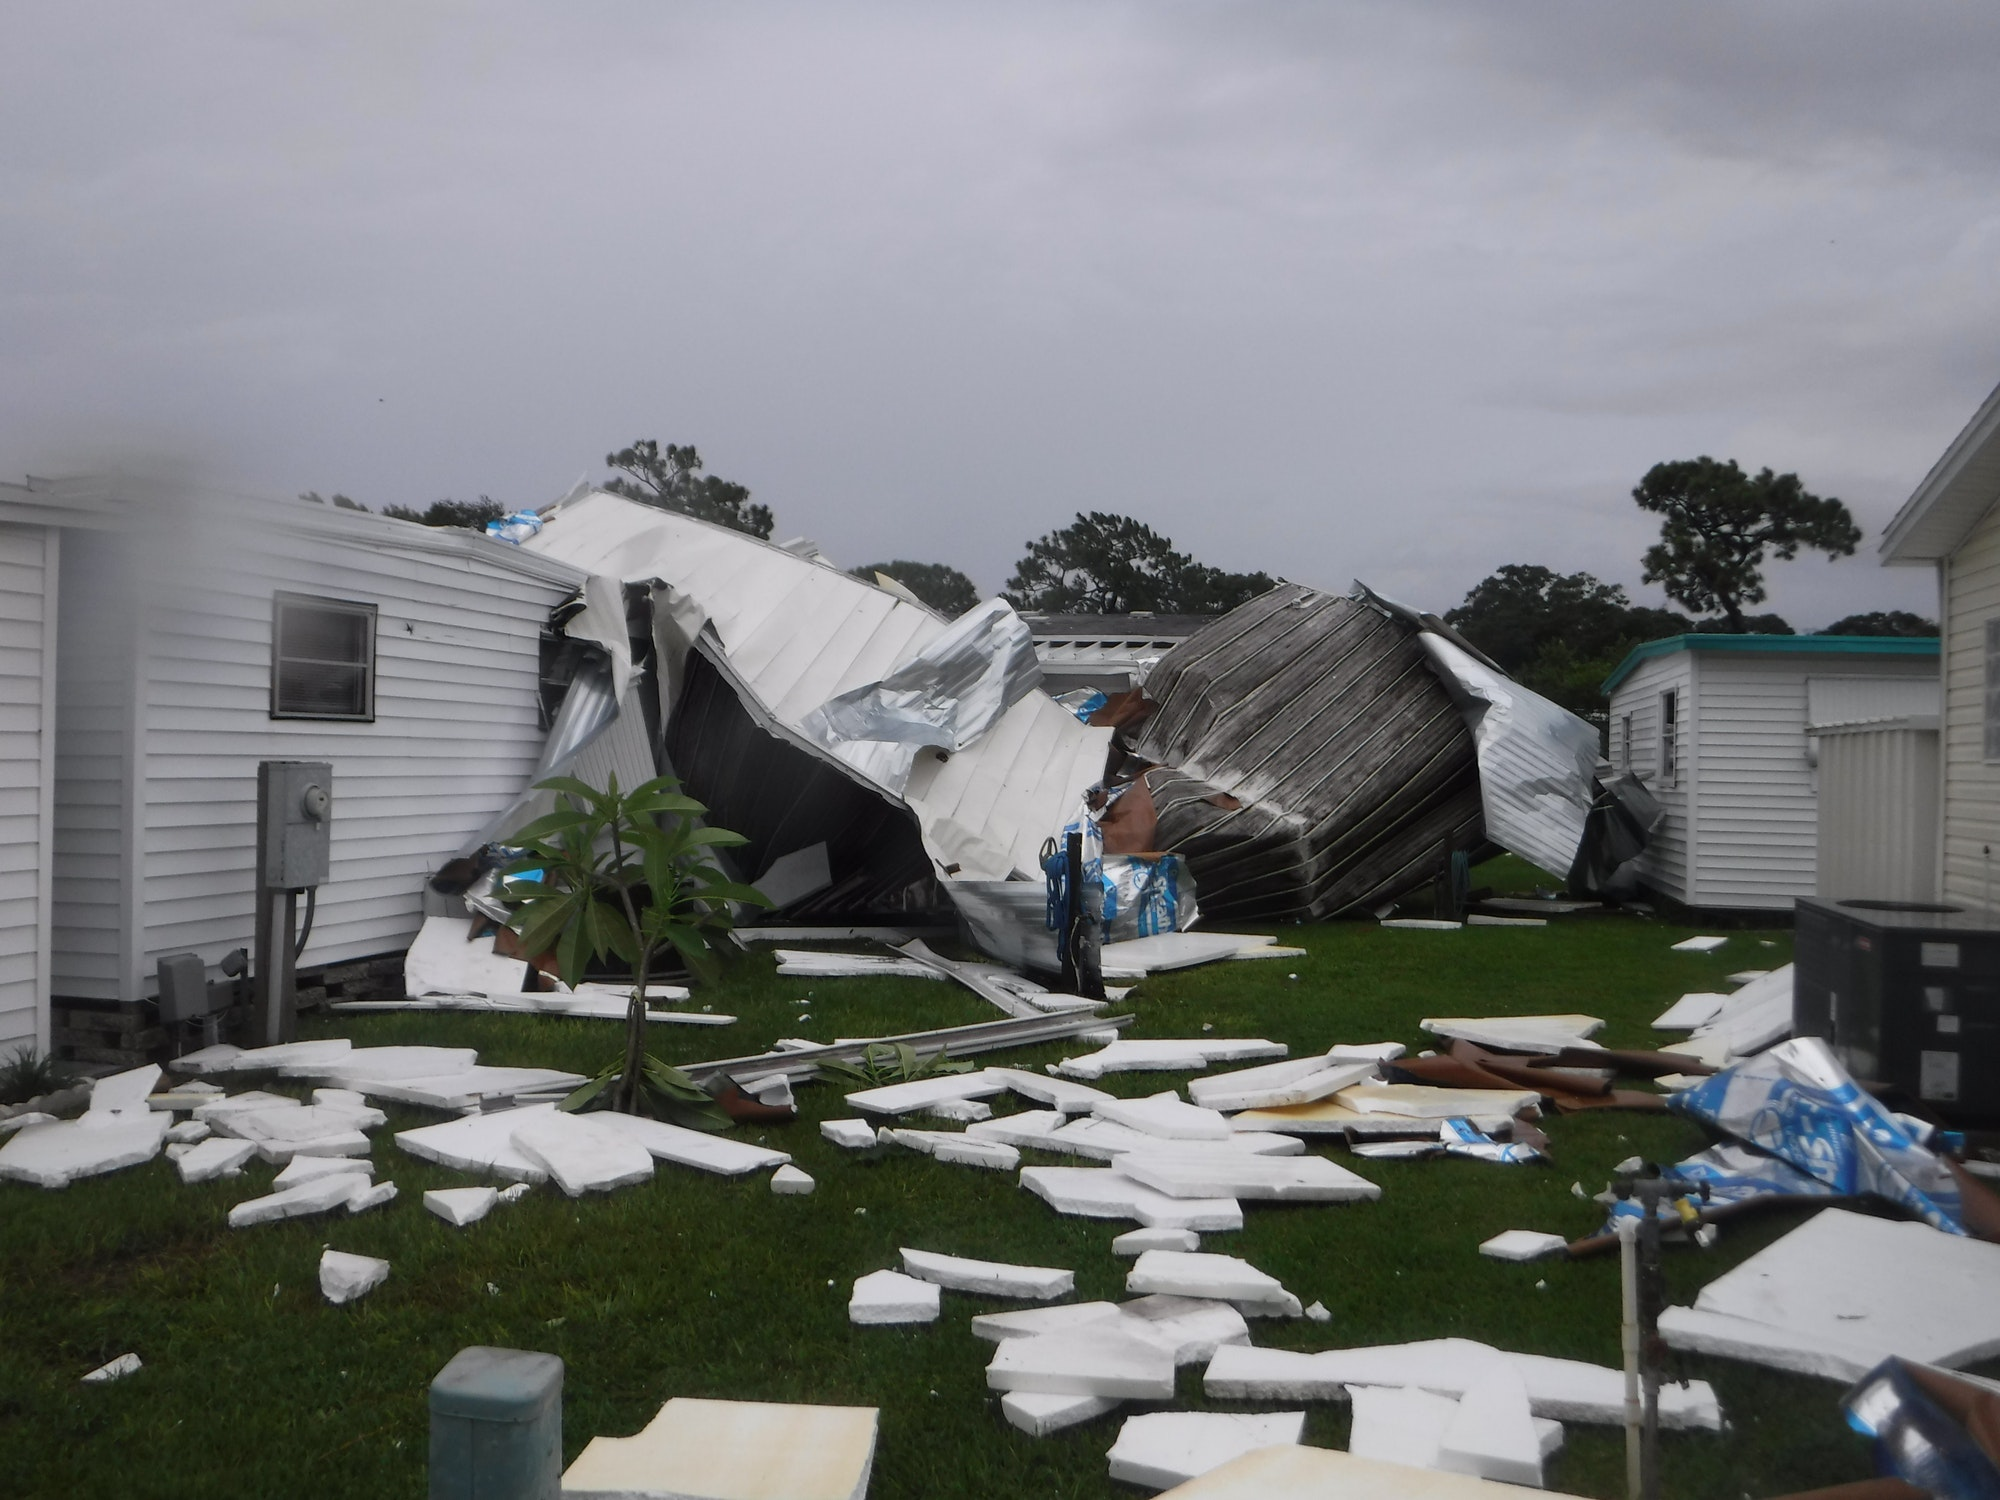 Mobile homes damaged by severe weather